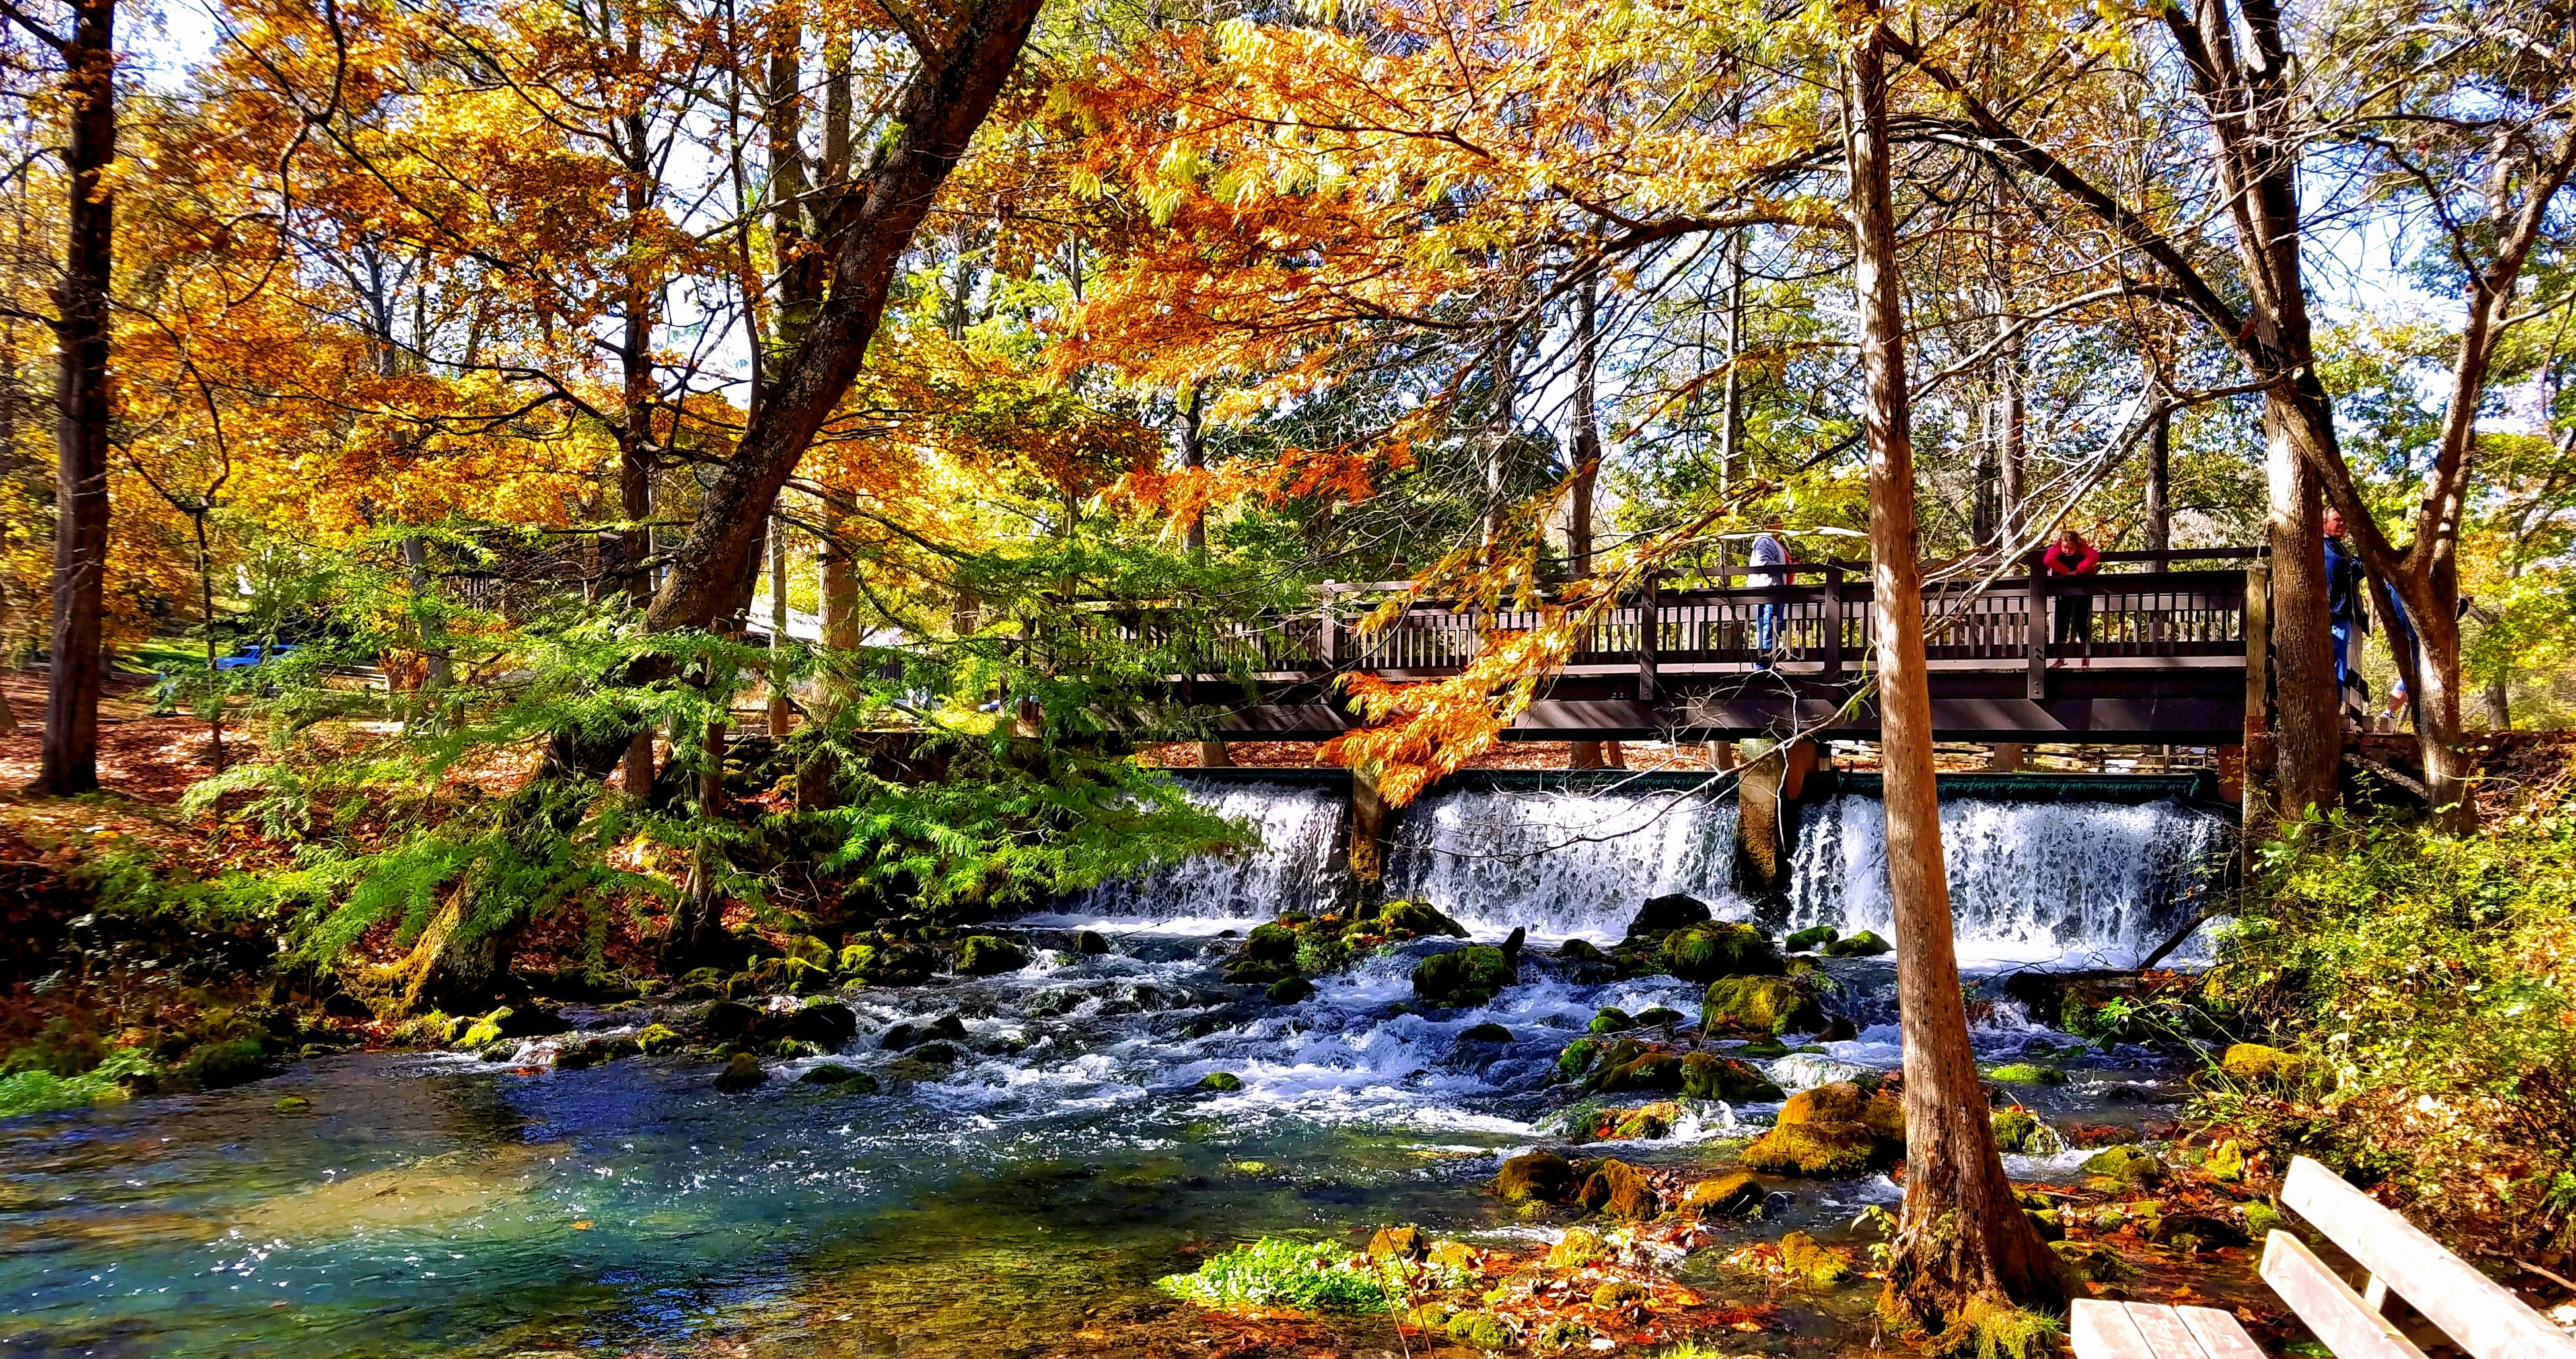 tree, water, autumn, tranquil scene, scenics, tree trunk, change, season, bridge - man made structure, tranquility, built structure, forest, beauty in nature, stream, nature, branch, orange color, river, non-urban scene, day, outdoors, footbridge, woodland, growth, flowing water, flowing, vacations, tourism, no people, bridge